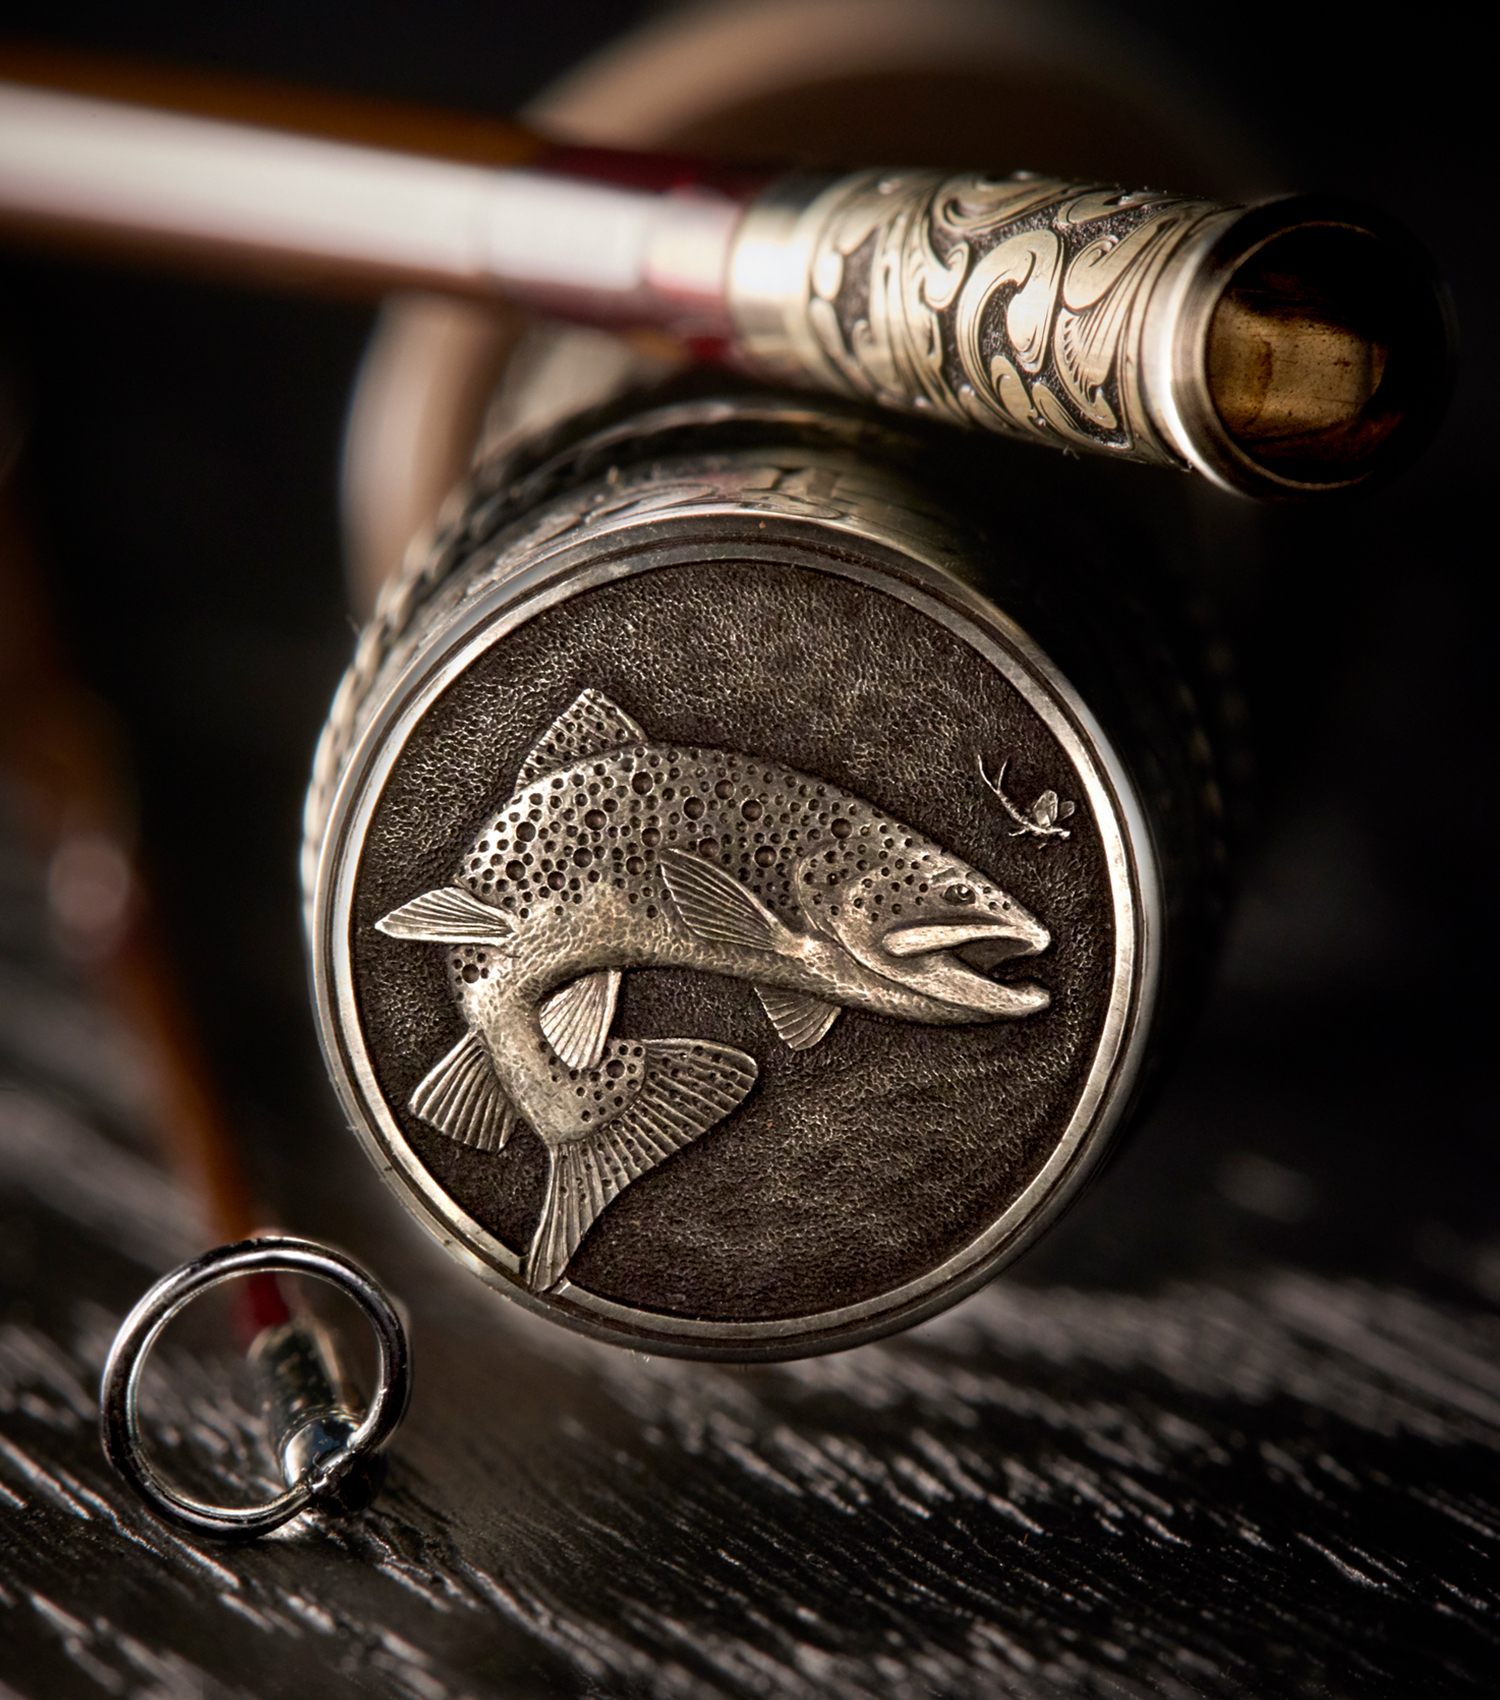 The end of a custom fly fishing rod from Bill Oyster engraved with a fish